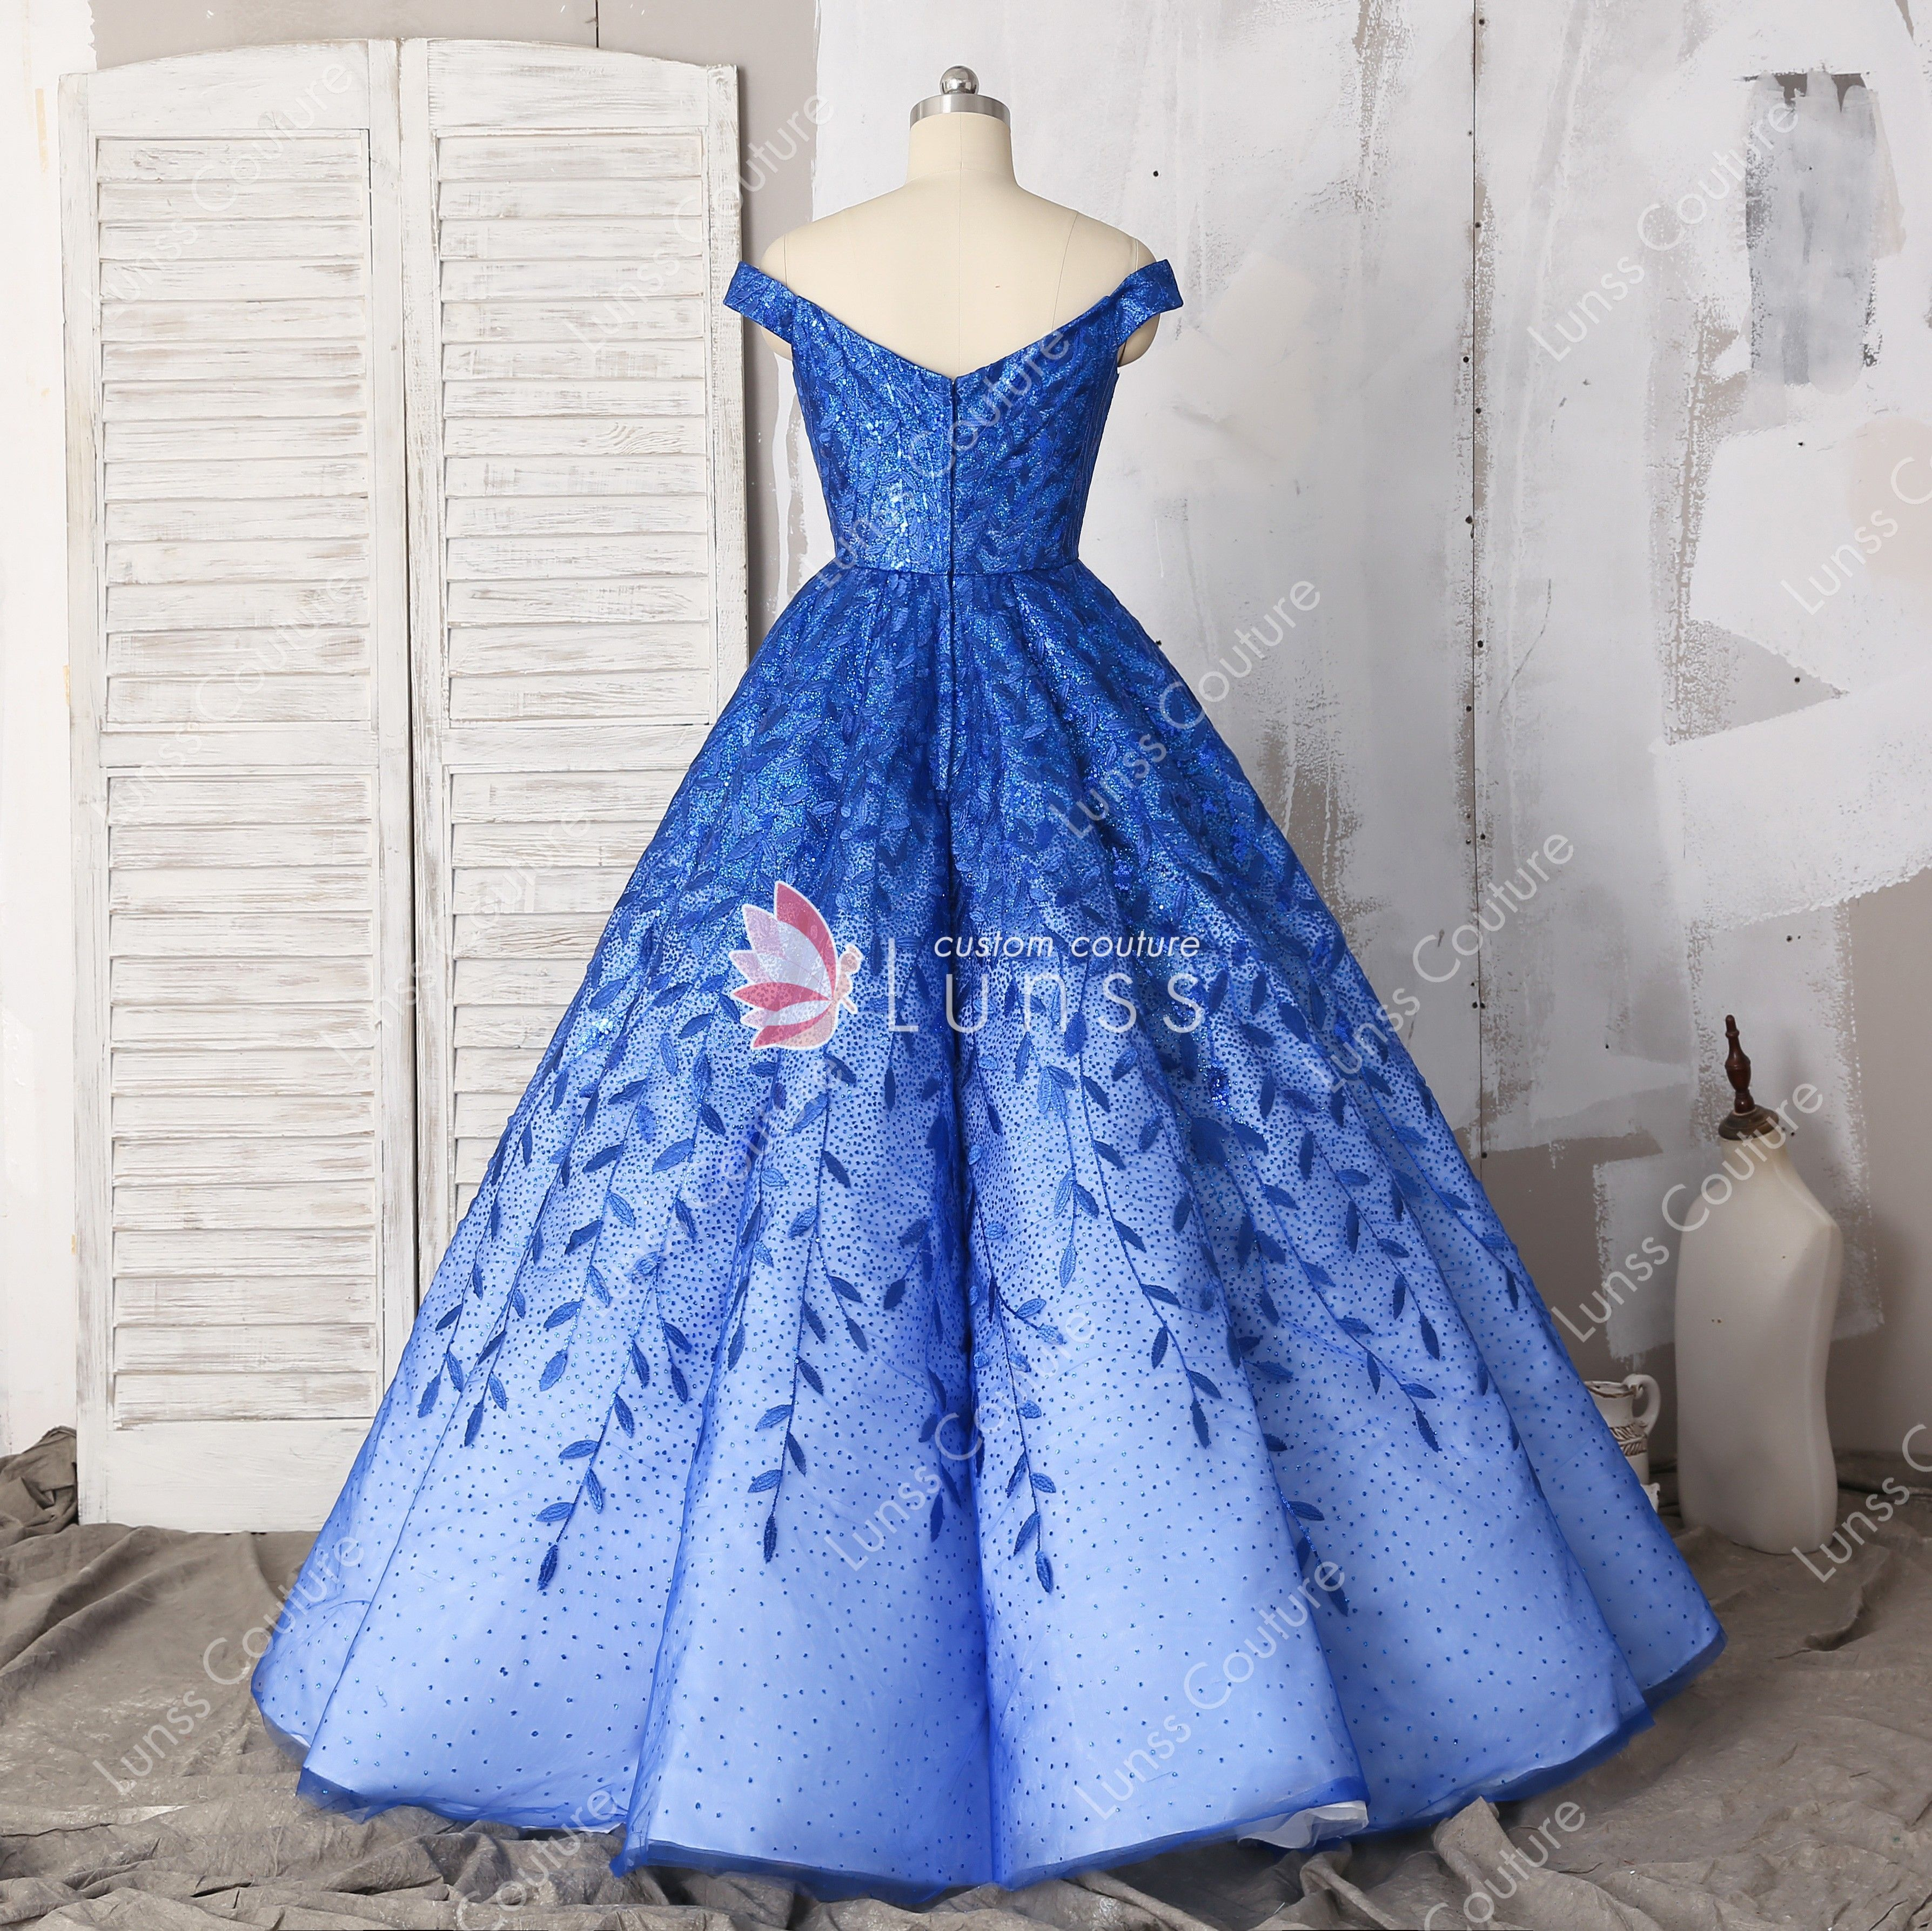 753d5b17b6f sparkly ombre royal blue off the shoulder floor length ball gown prom dress  with leaf lace for wholesale